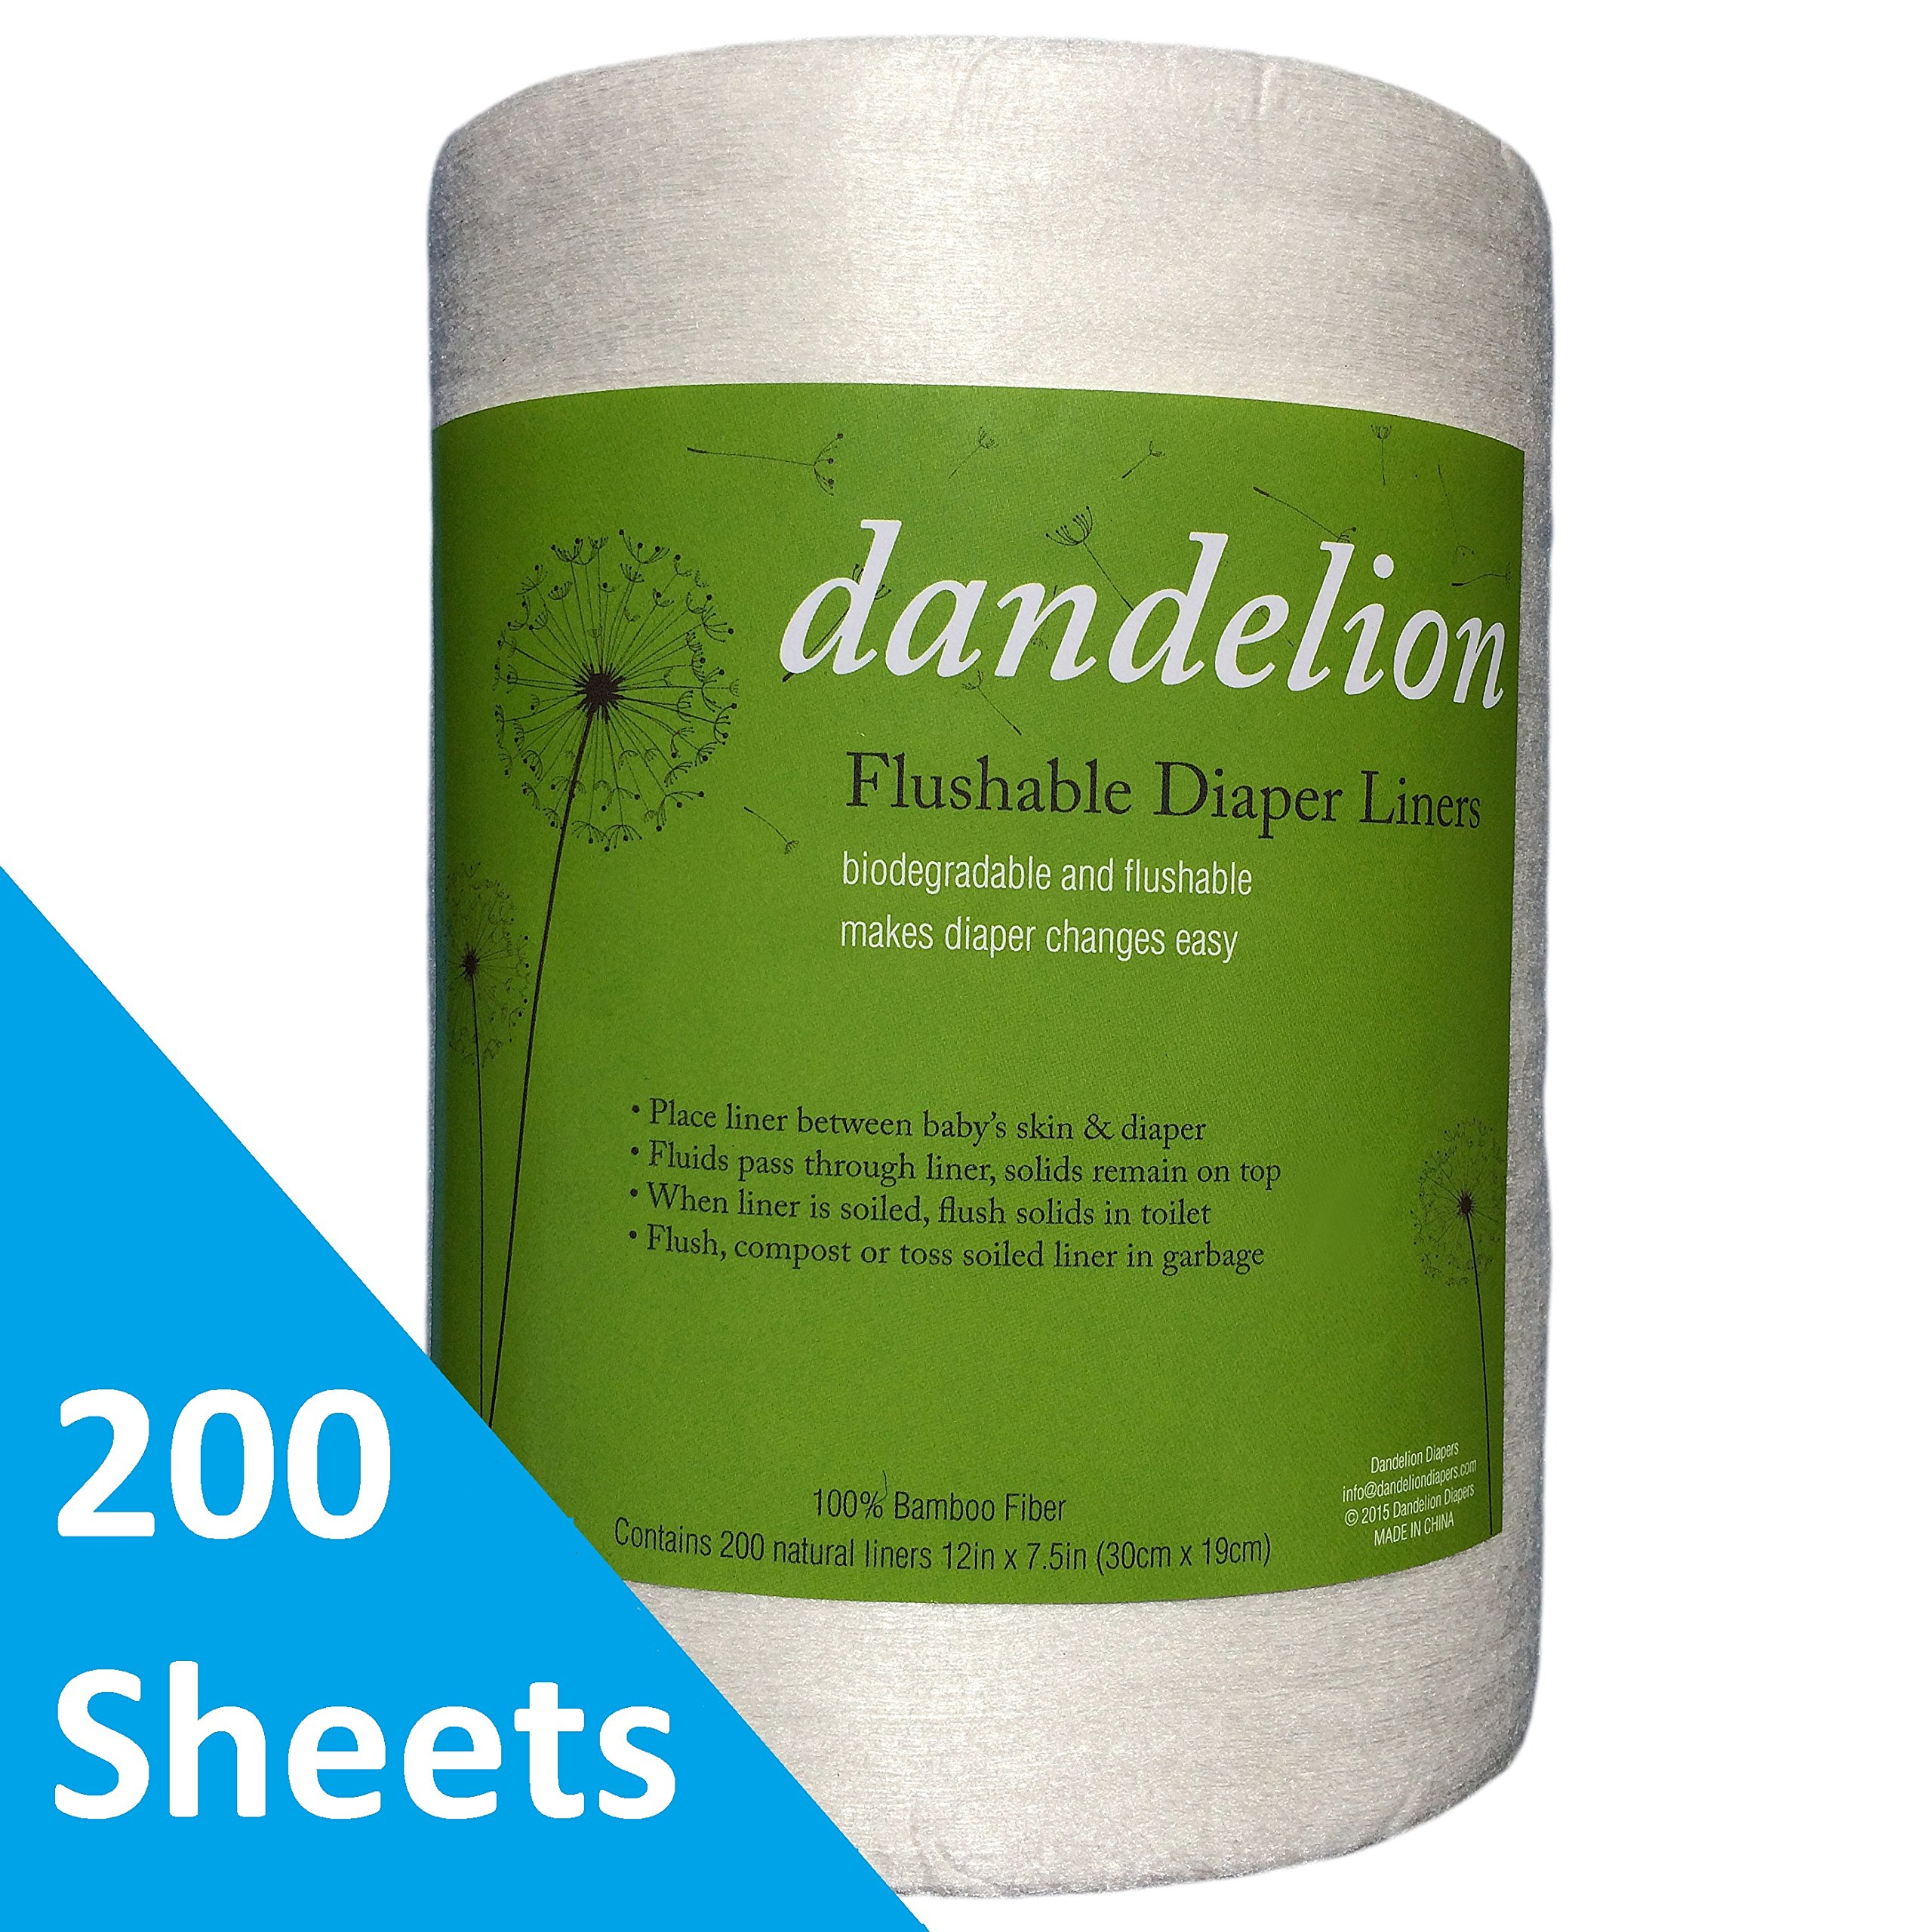 Dandelion Diapers Biodegradable and Flushable Natural Diaper Liners, Soft 100% Viscose Made from Bamboo 200 Sheets